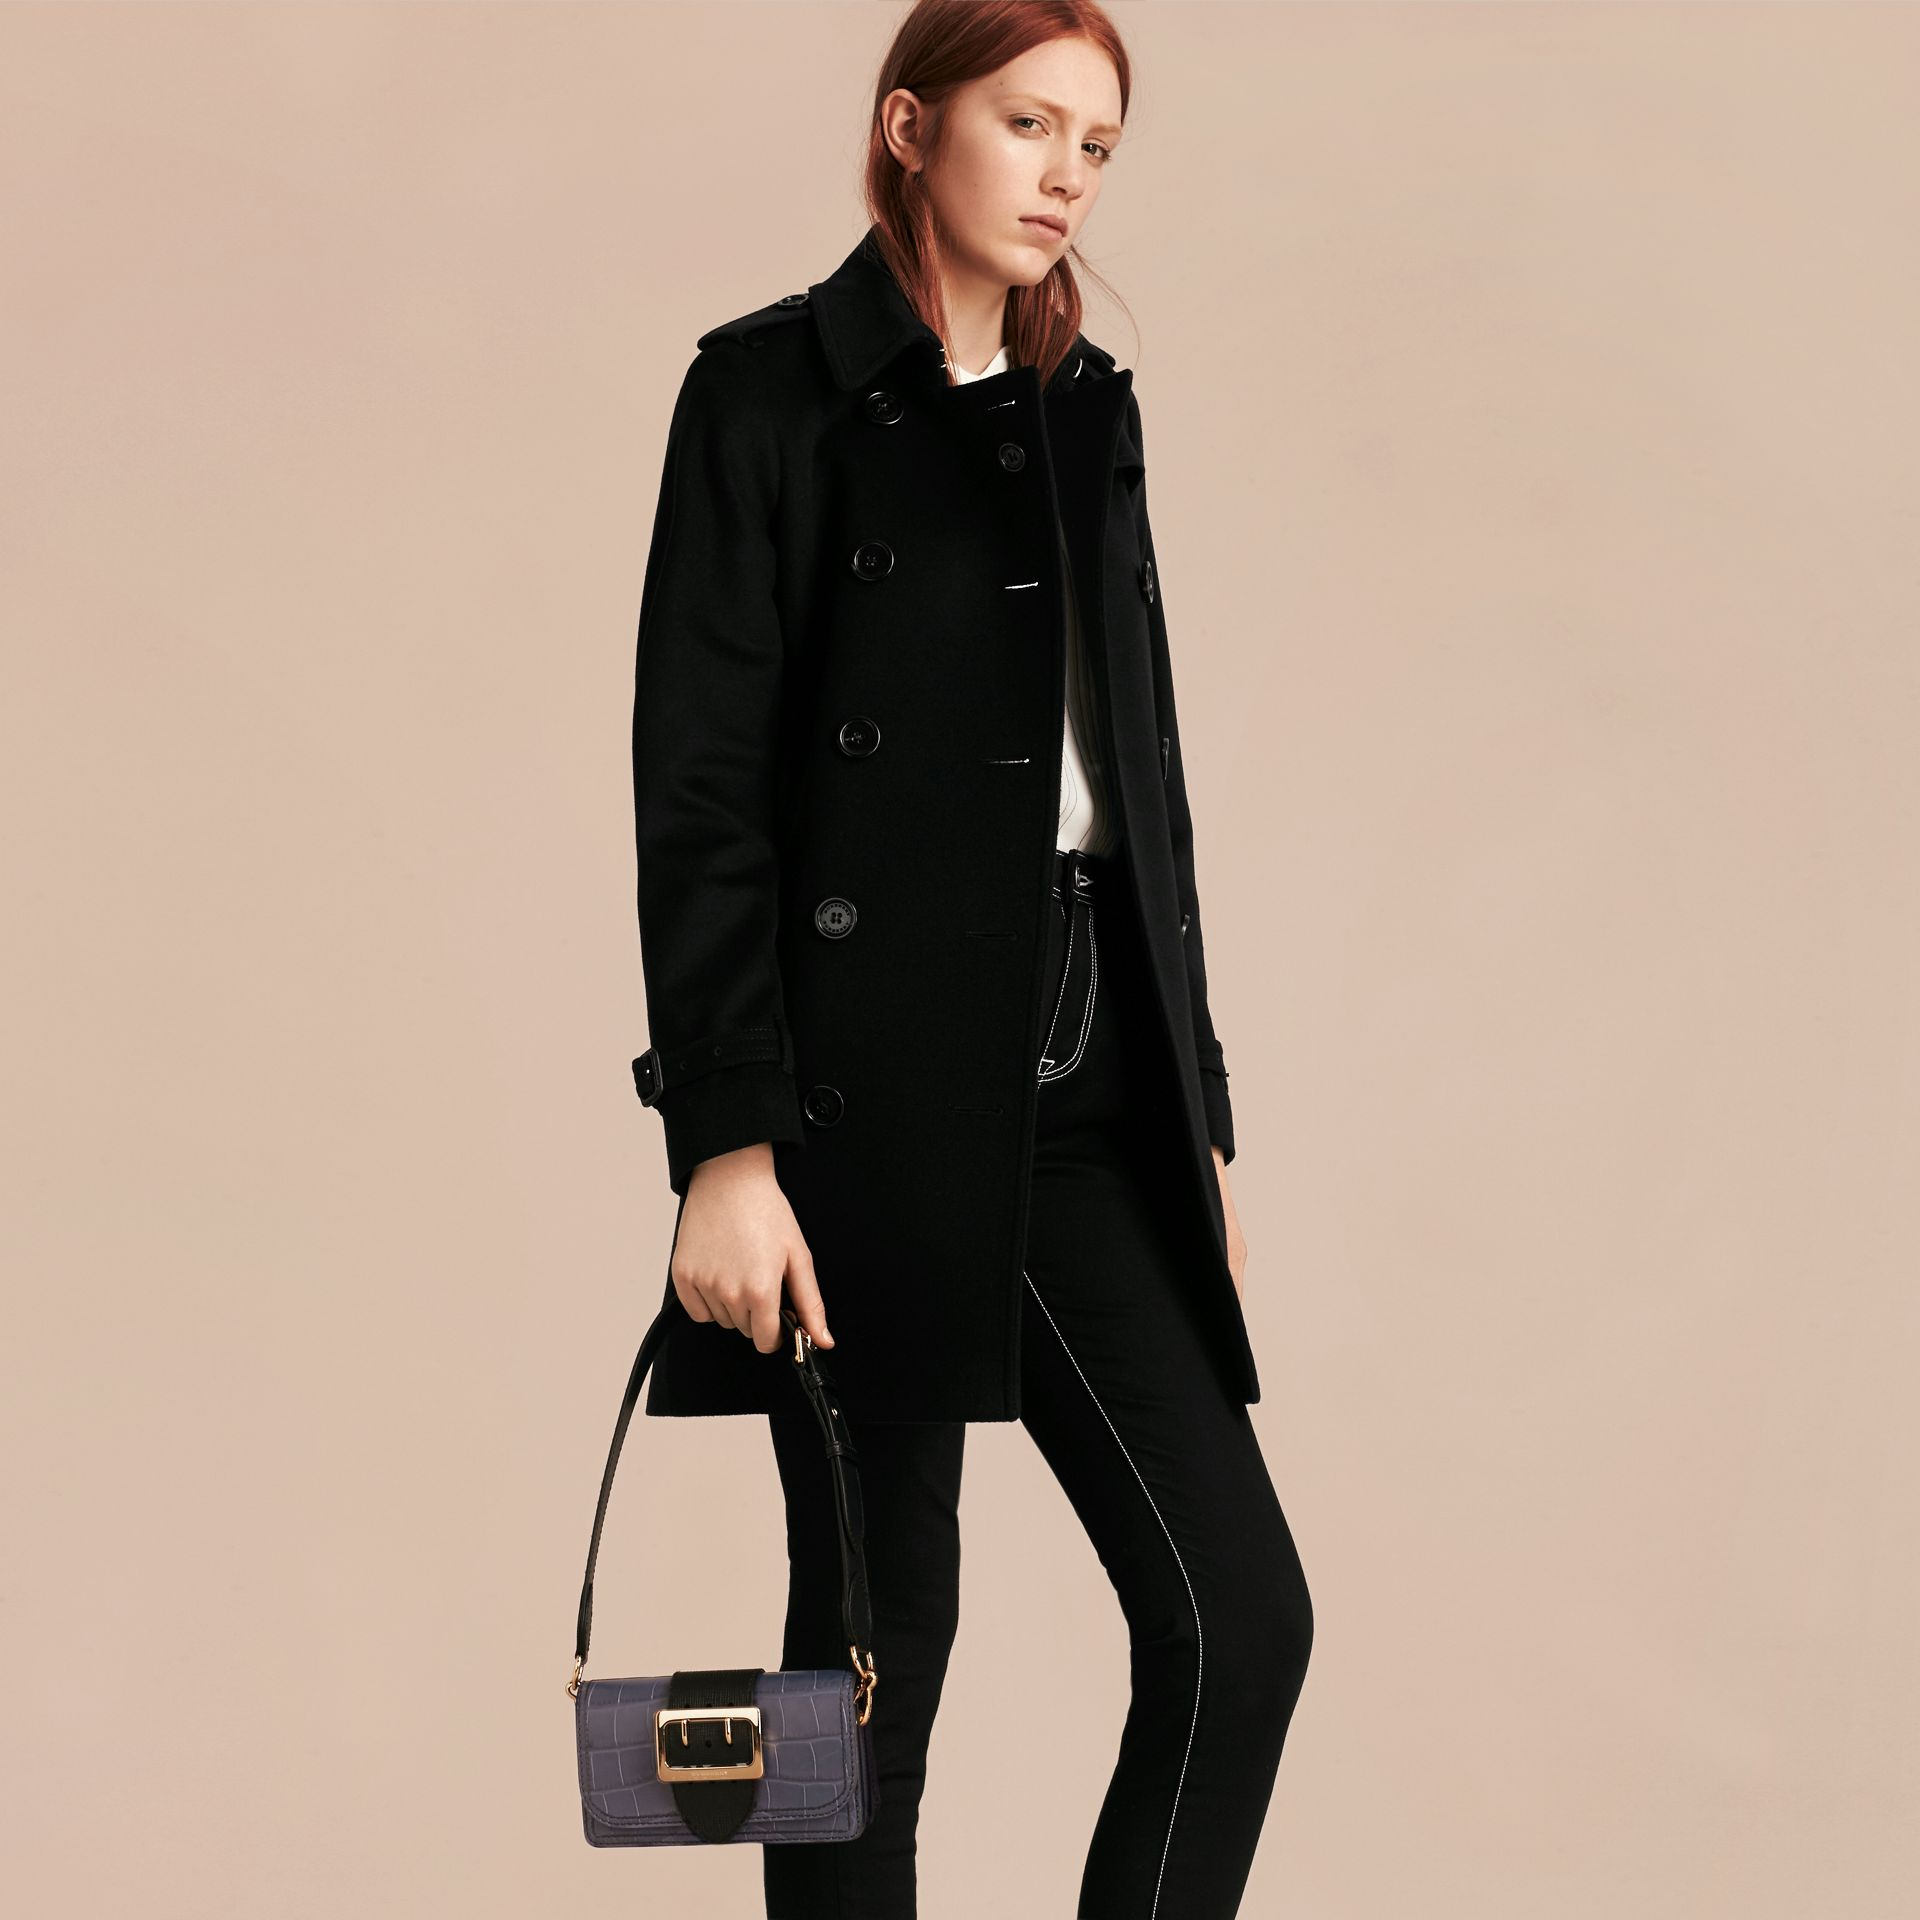 Navy / black The Small Buckle Bag in Alligator and Leather Navy / Black - gallery image 3